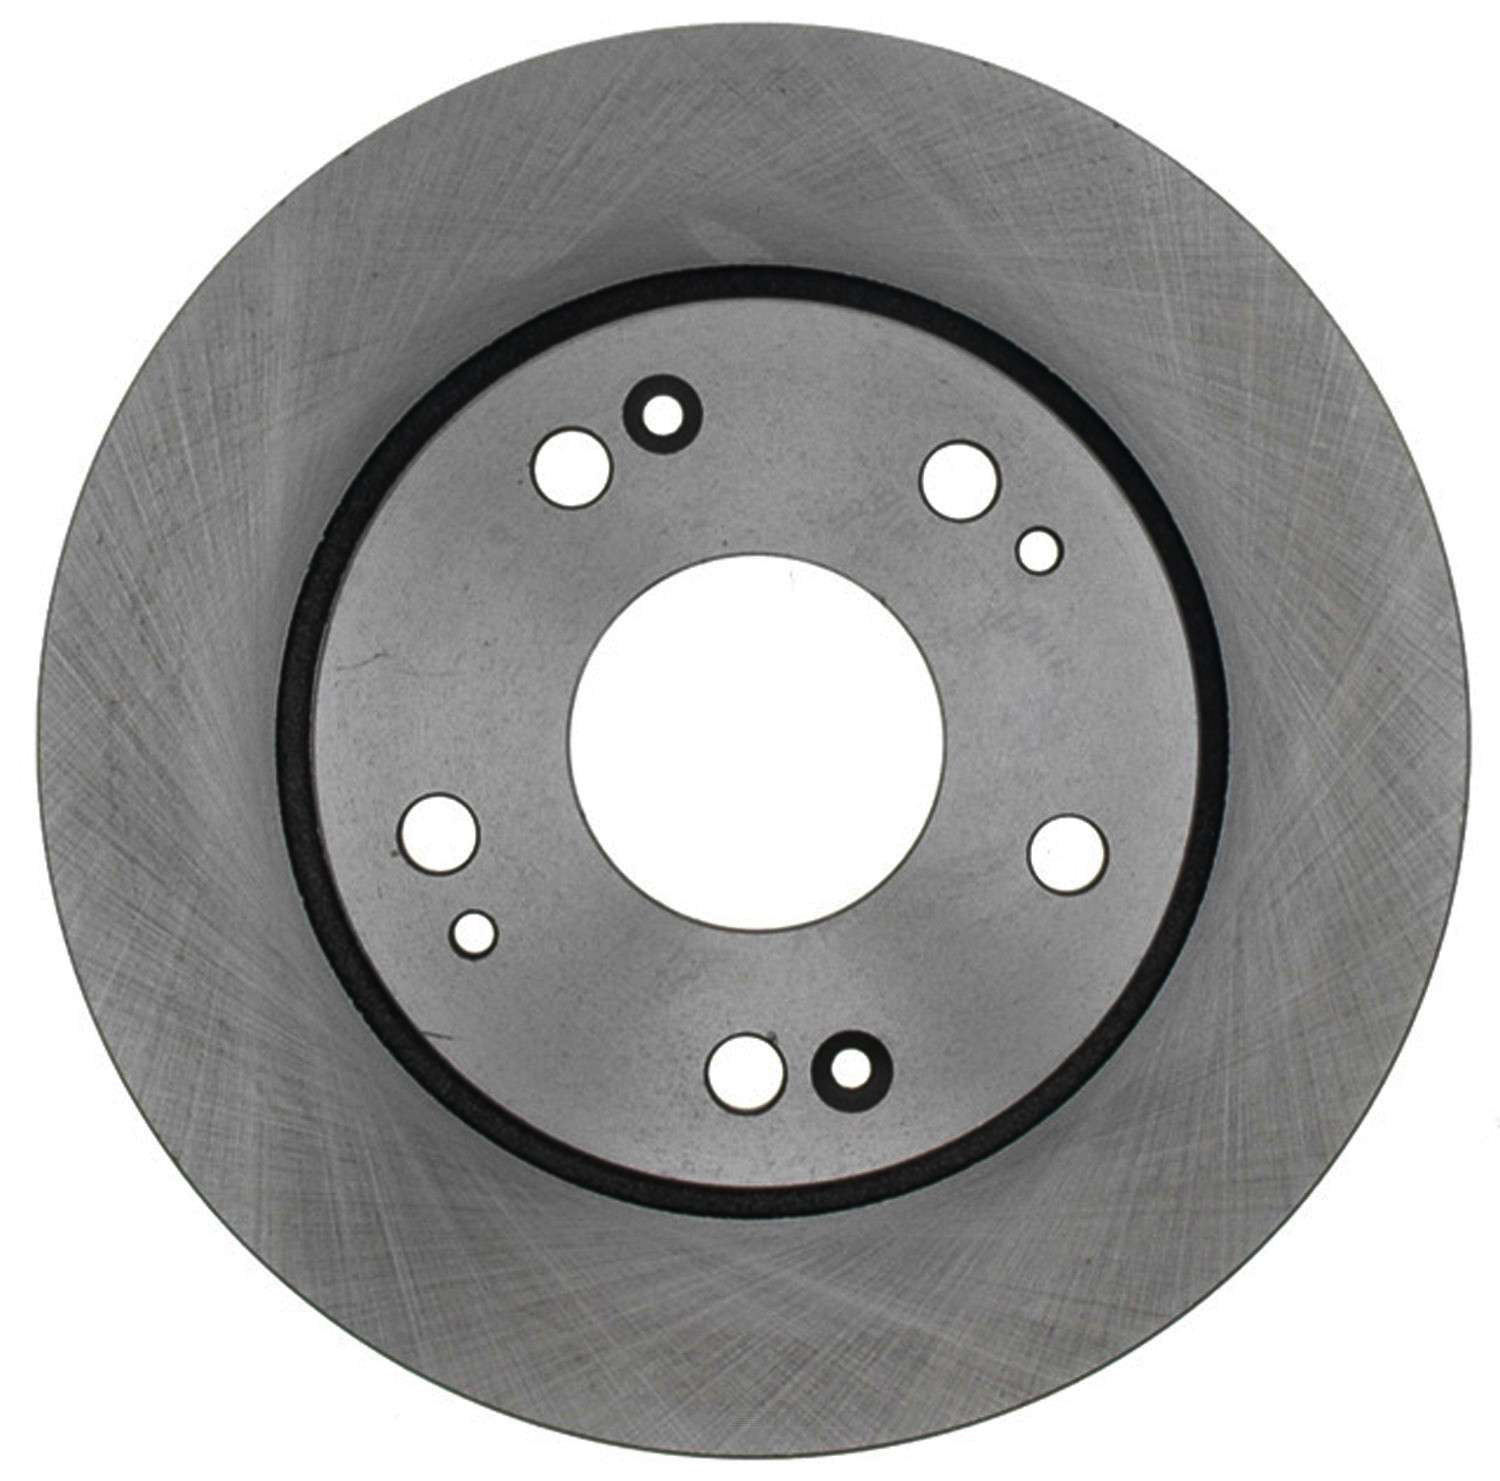 ACDELCO ADVANTAGE - Disc Brake Rotor - DCD 18A2331A